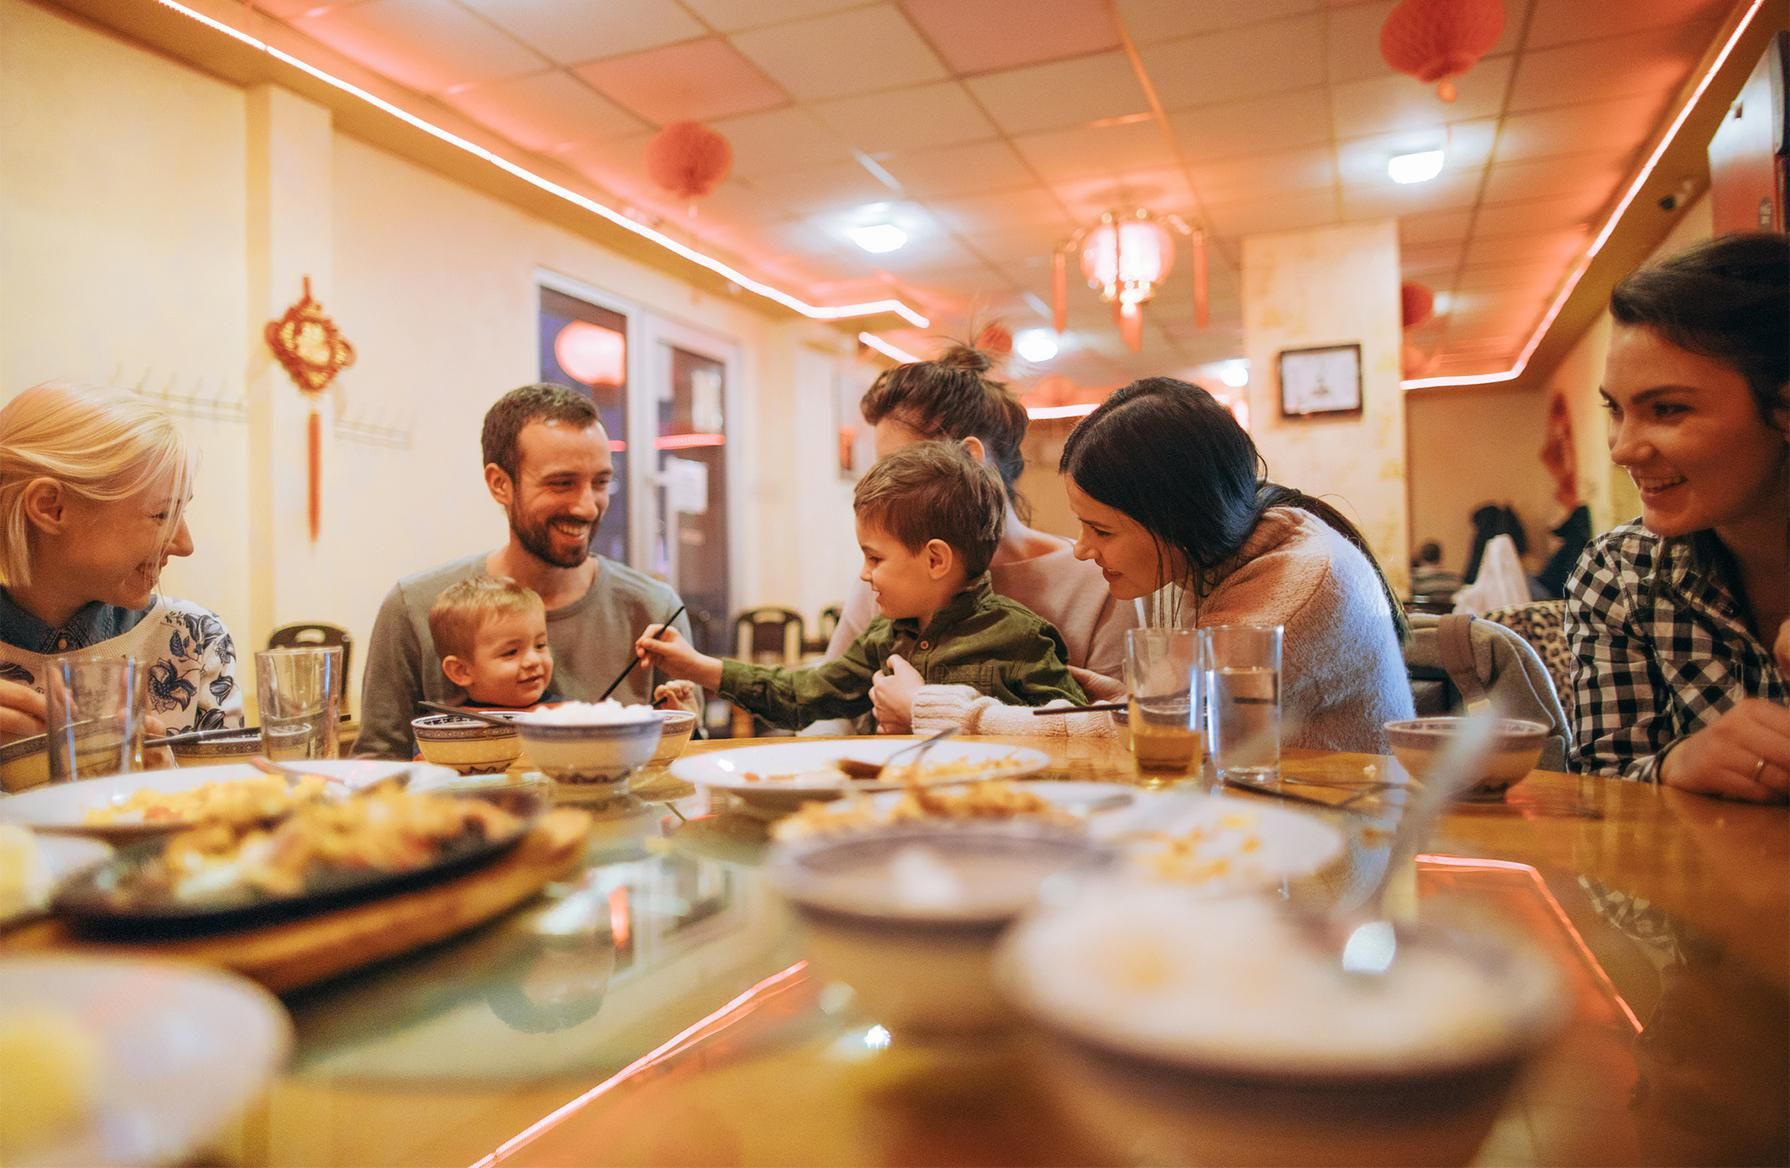 These 75 Restaurants Are Affordable And Have Something On The Menu To Satisfy Everyone Great For A Family Night Out